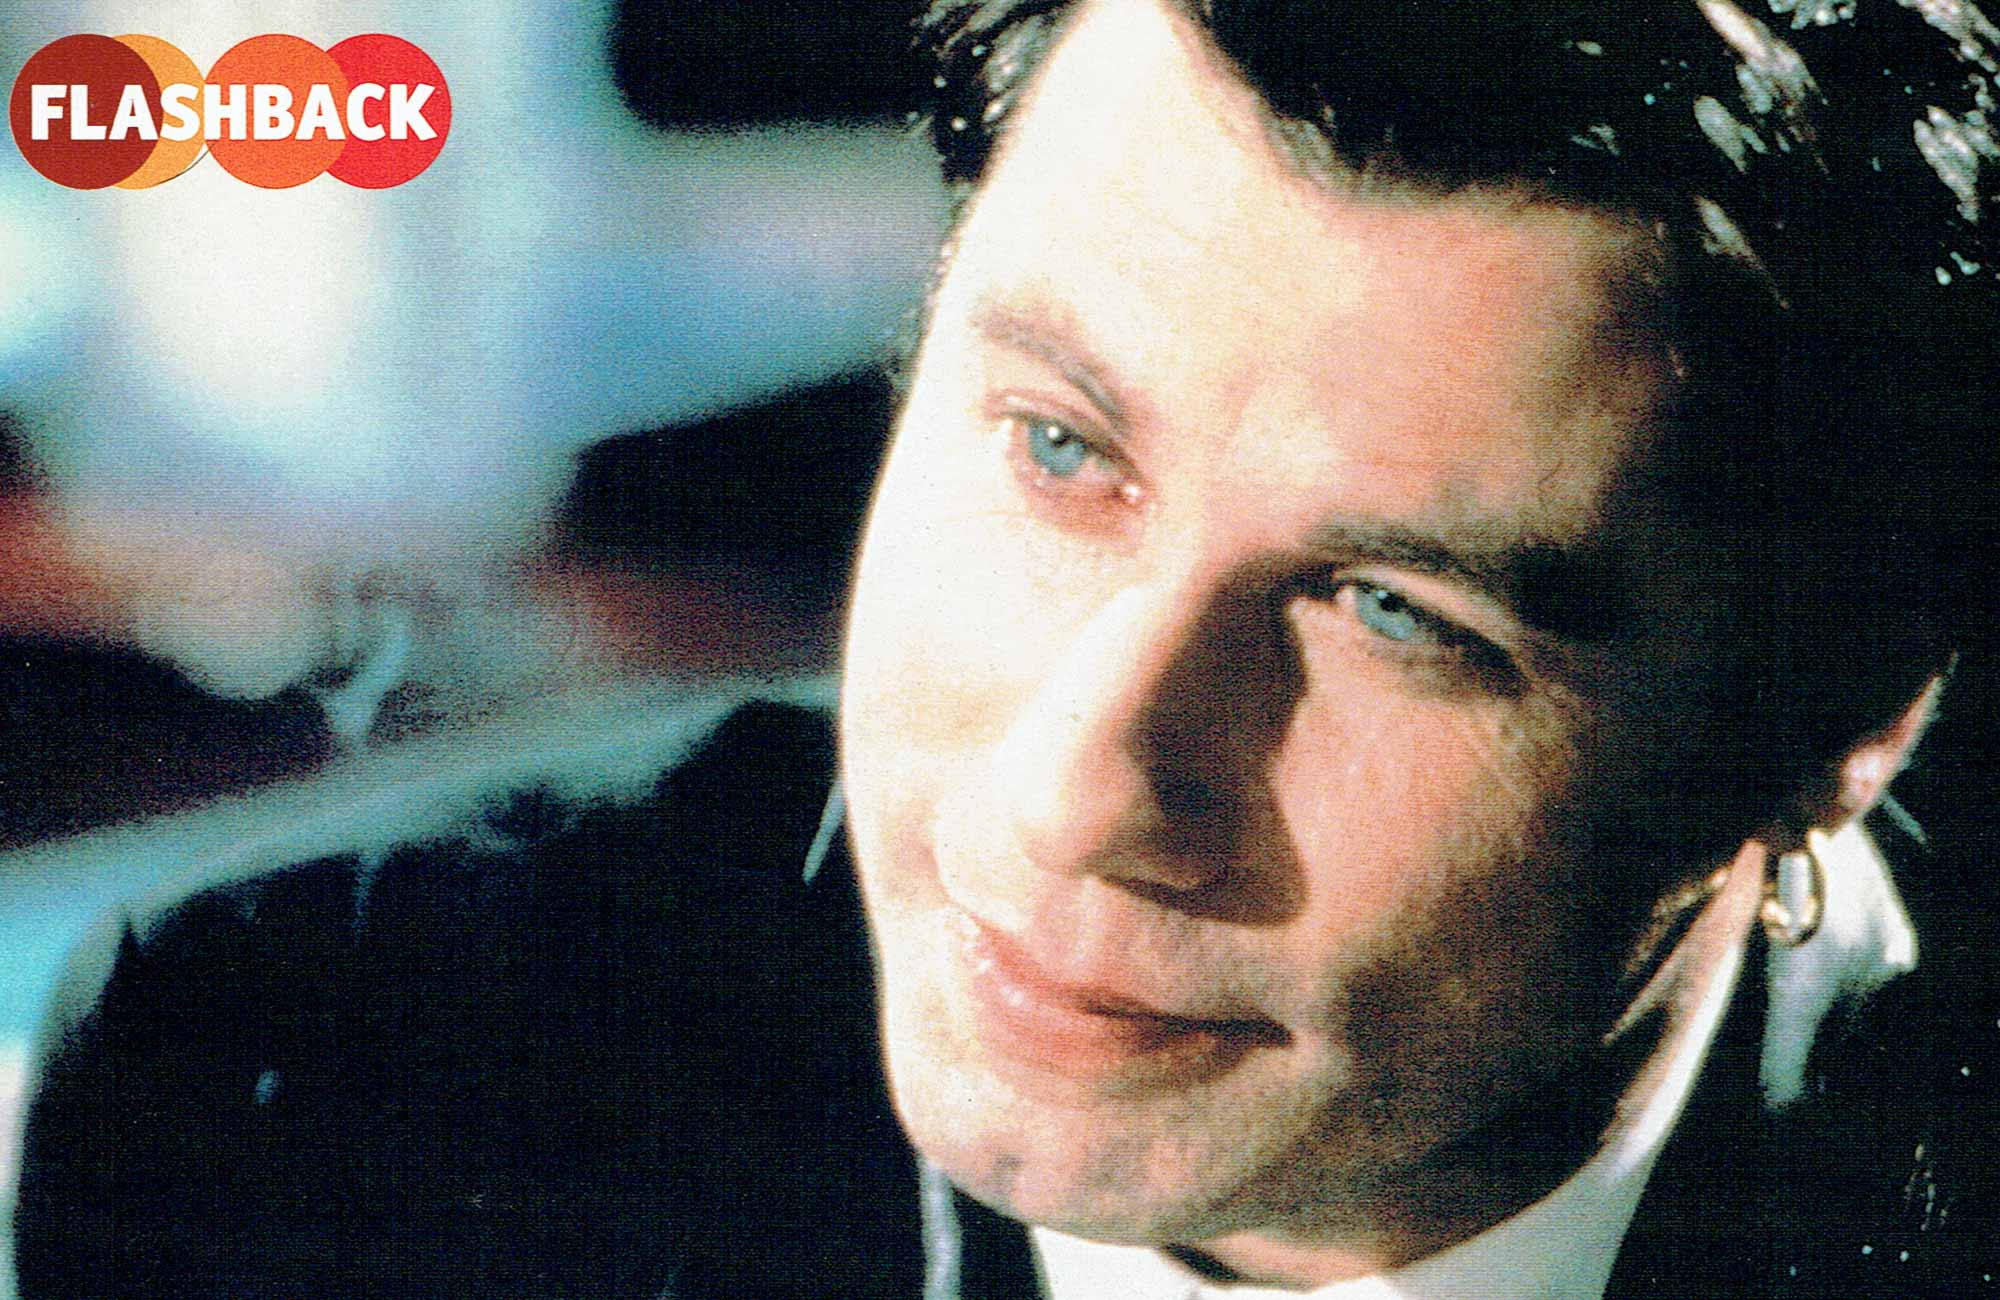 Flashback: Pulp Fiction